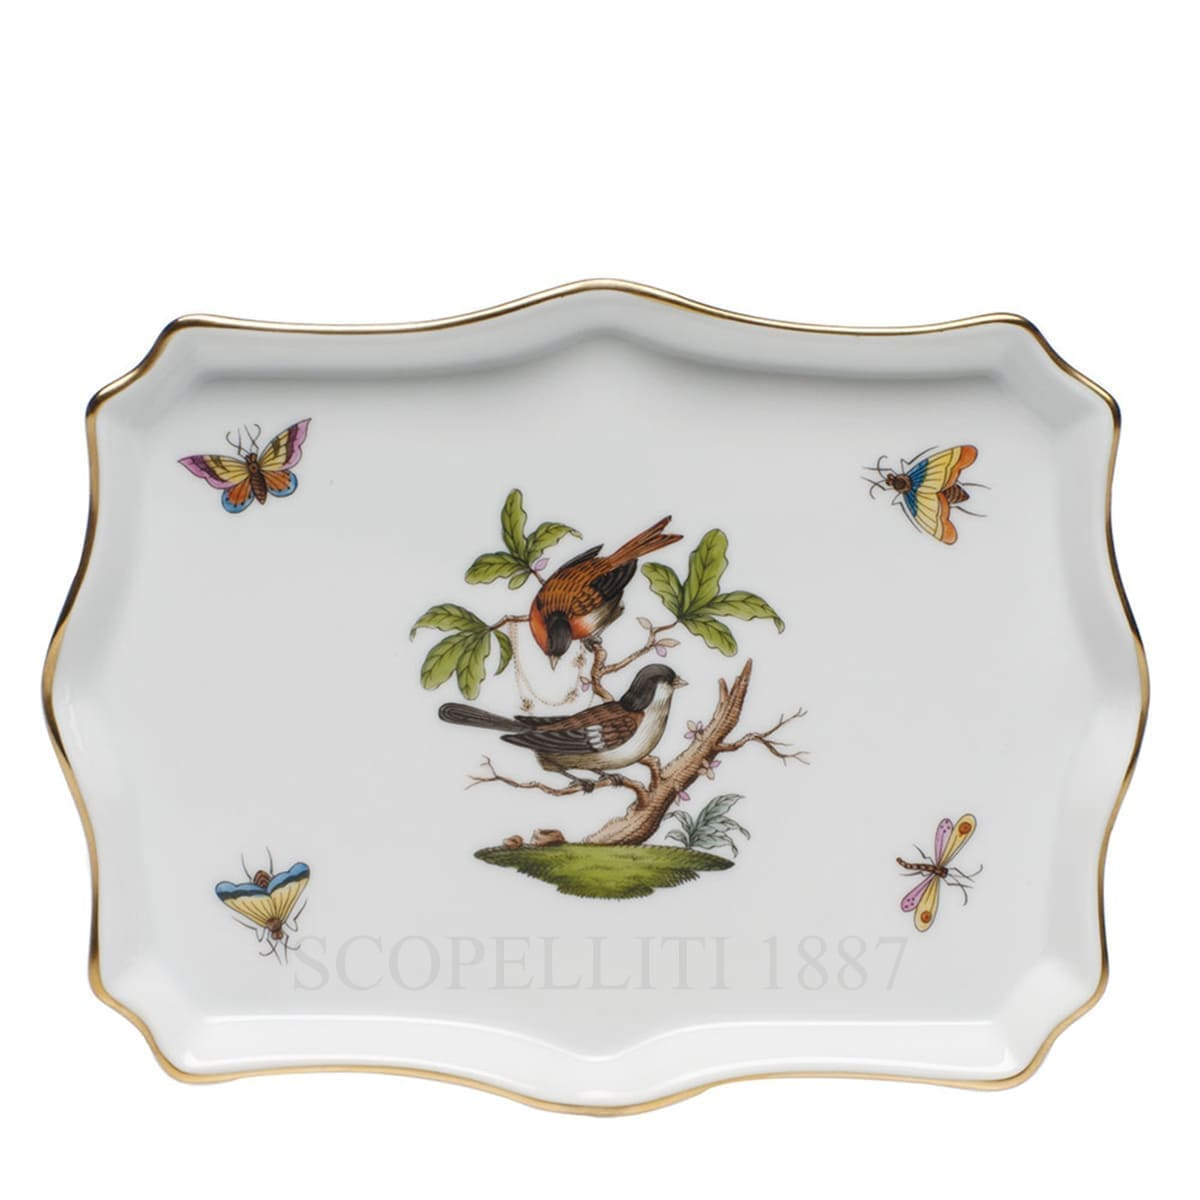 herend porcelain rothschild rectangular tray